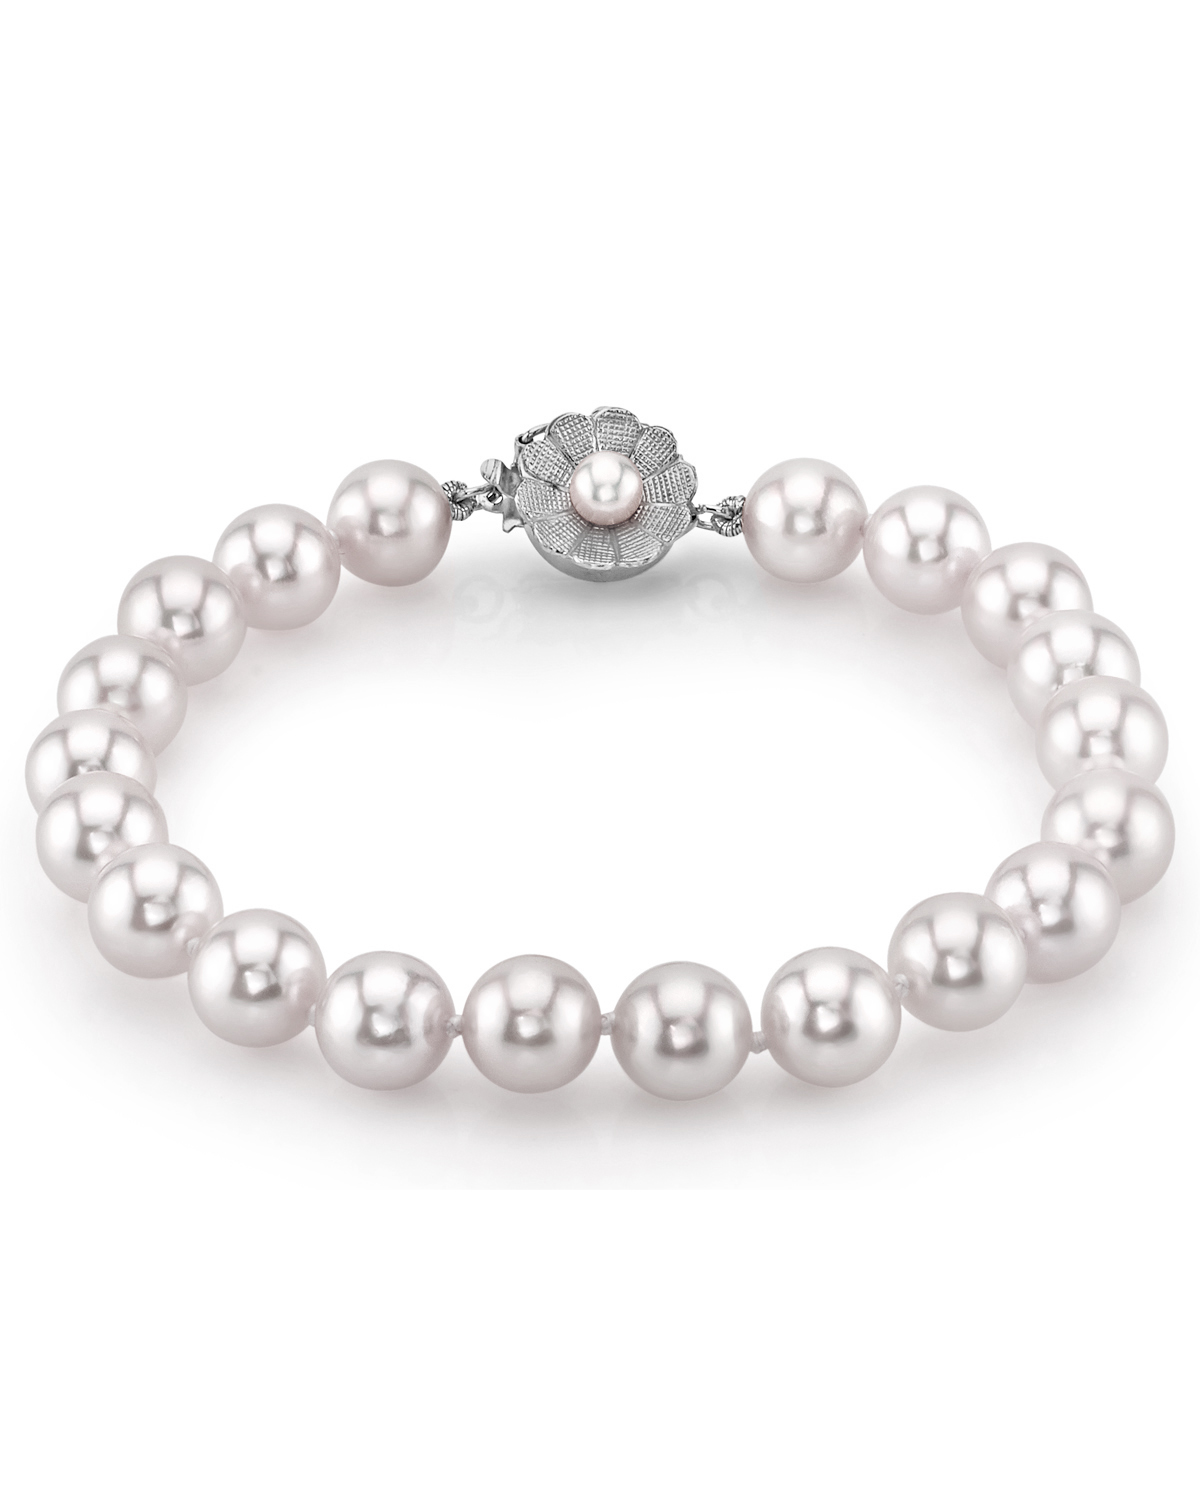 7.0-7.5mm Akoya White Pearl Bracelet- Choose Your Quality